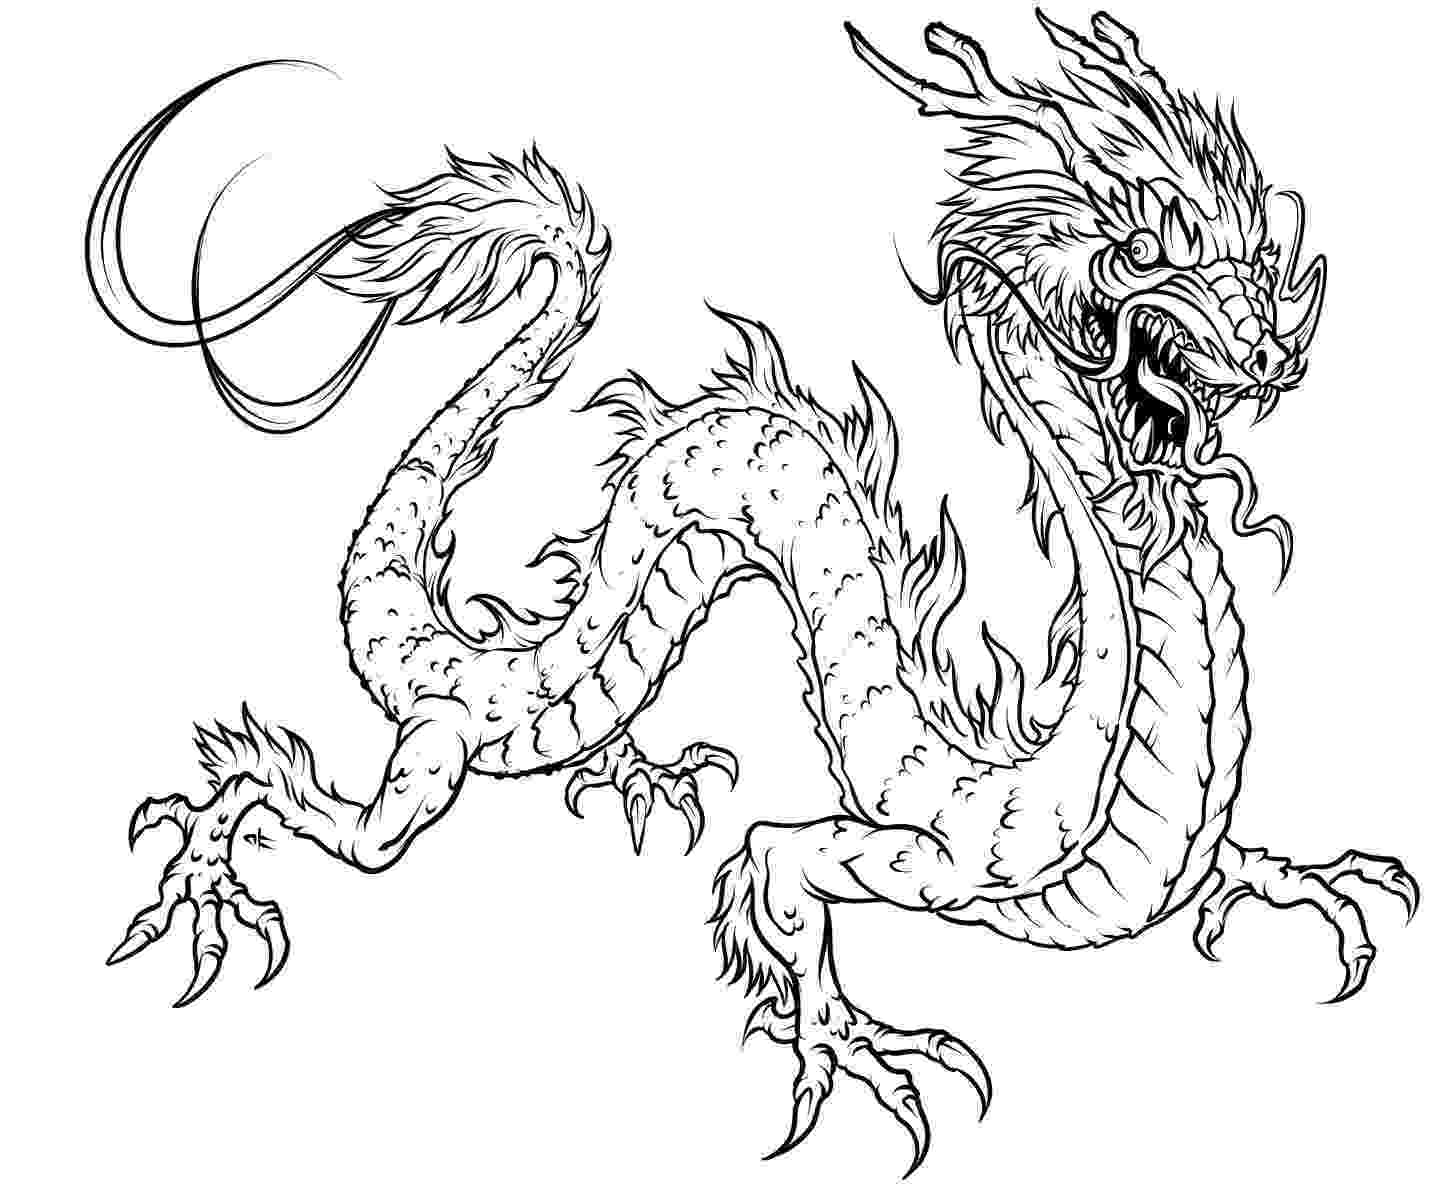 dragon coloring pages to print printable dragon coloring pages for kids cool2bkids dragon to print coloring pages